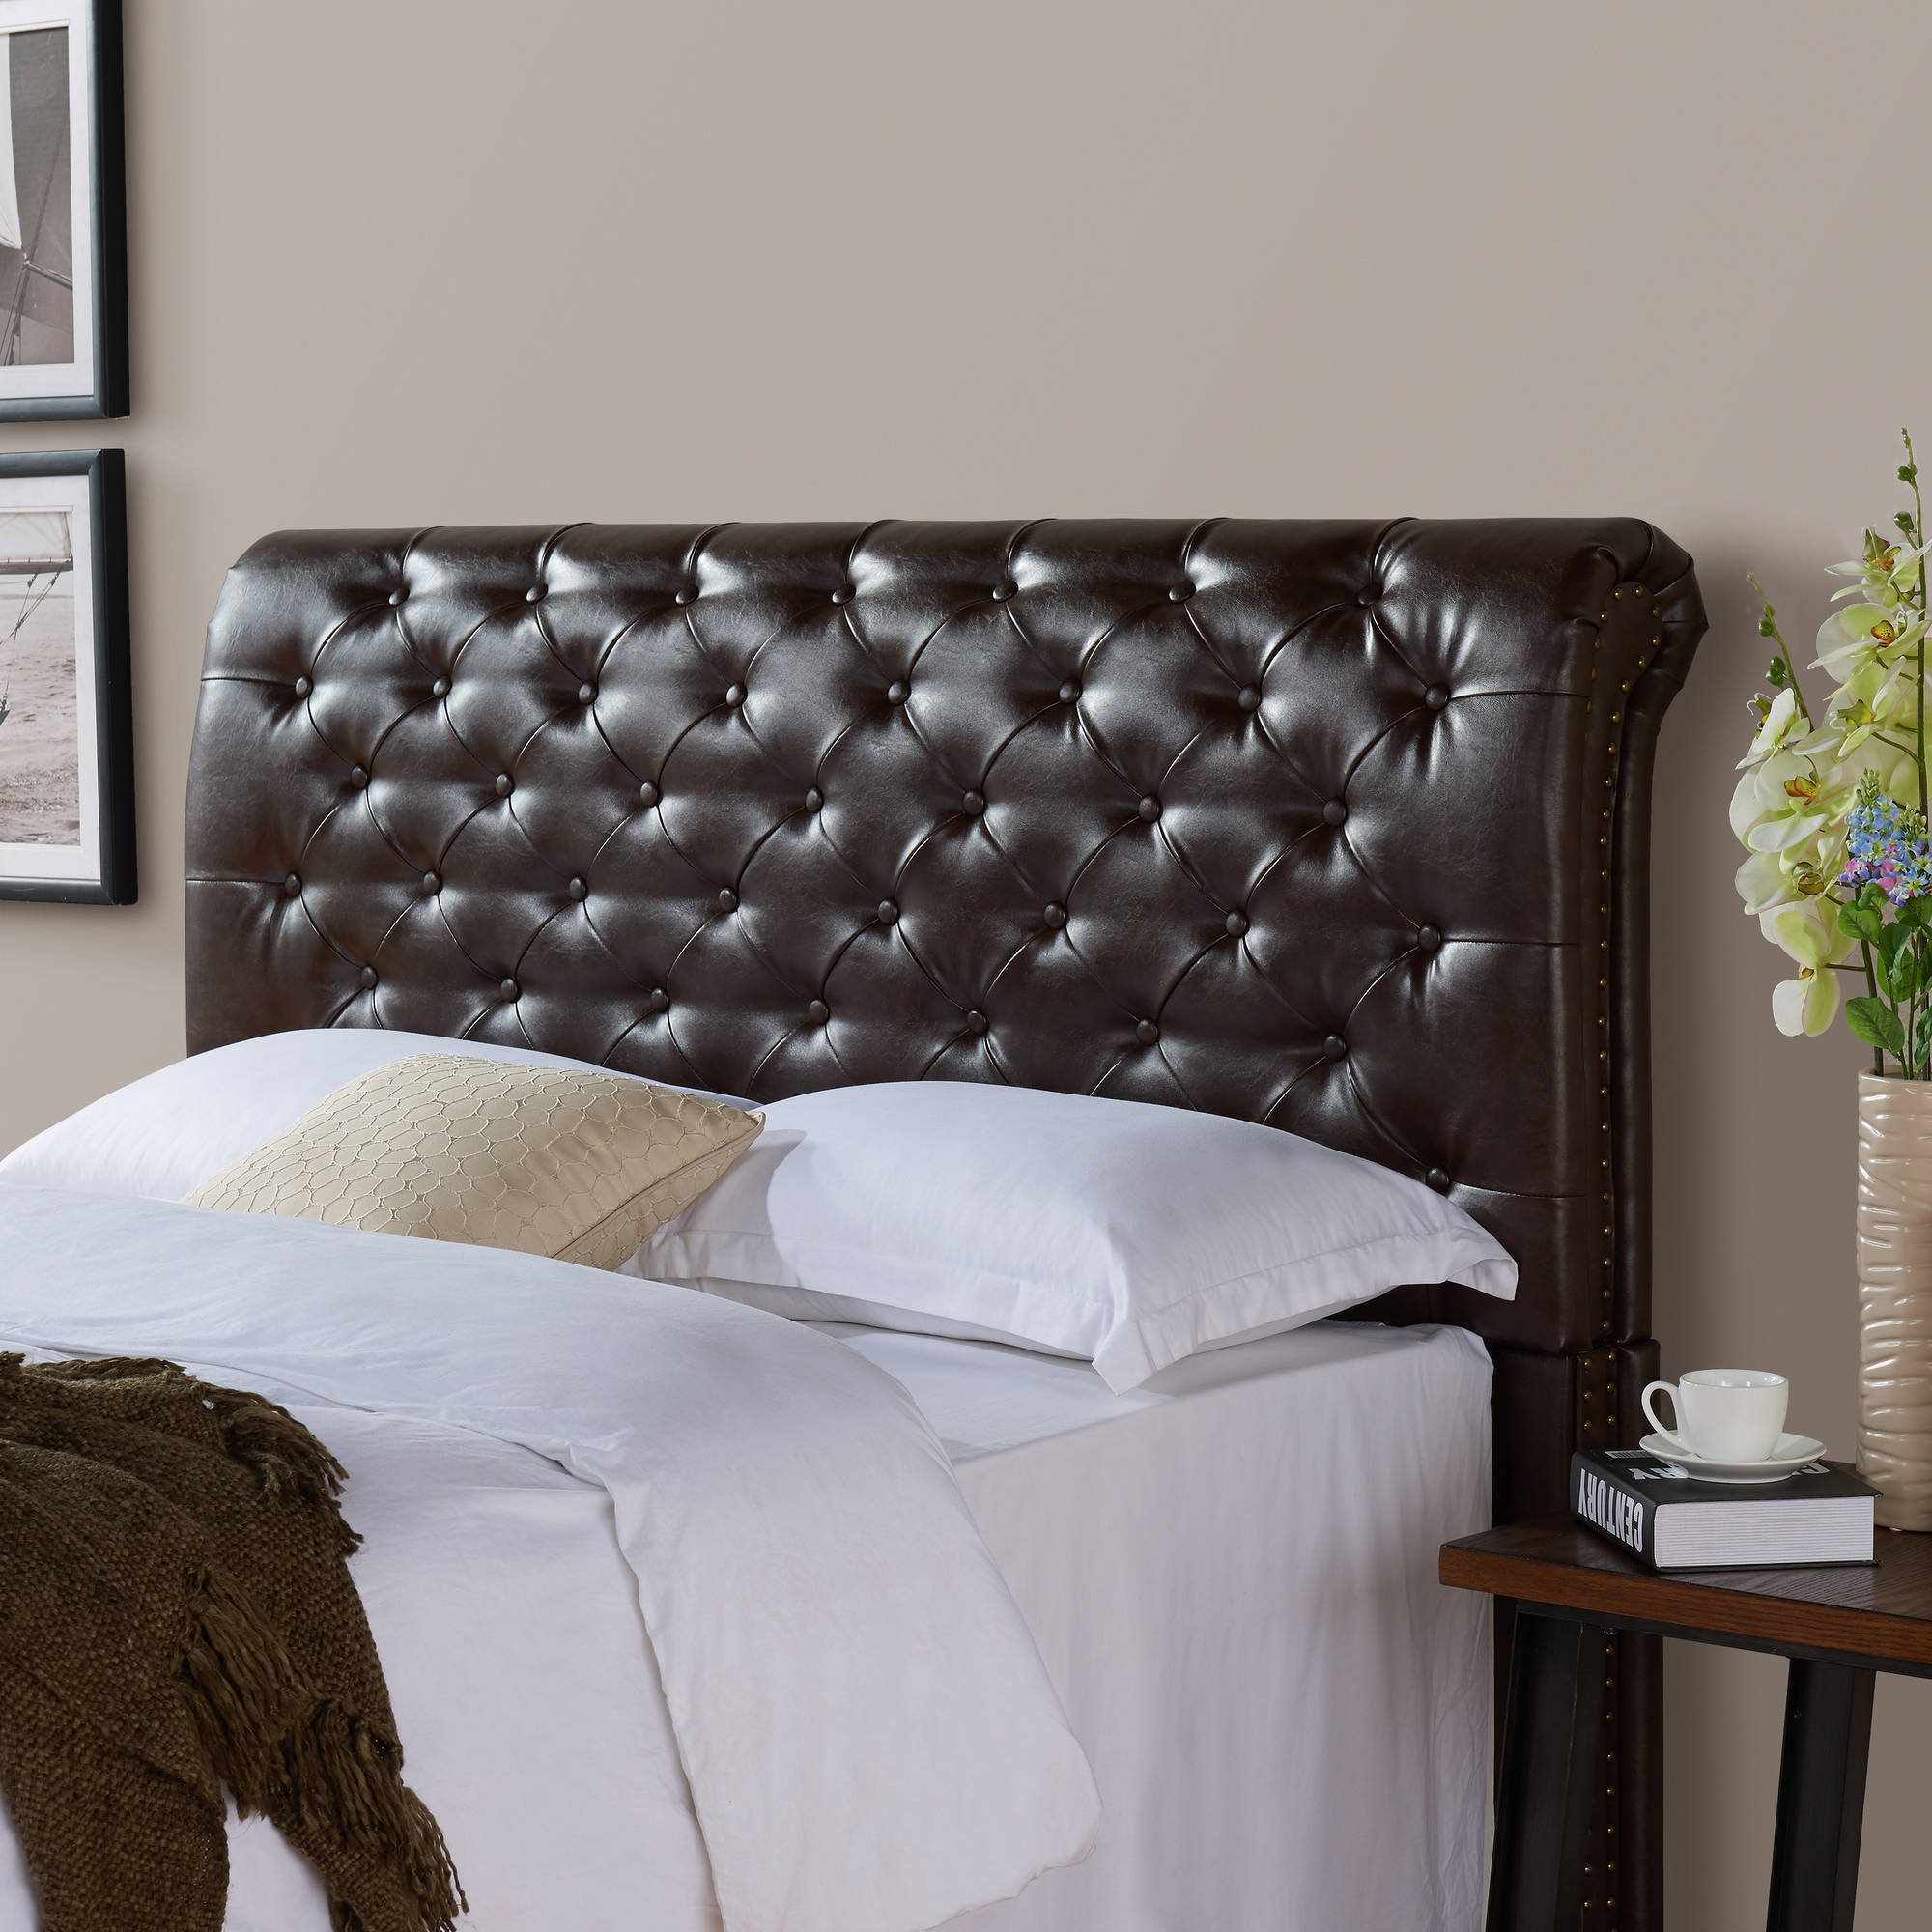 Better Homes and Gardens Rolled Tufted Upholstered Headboard, Brown Bonded Leather, Multiple Sizes